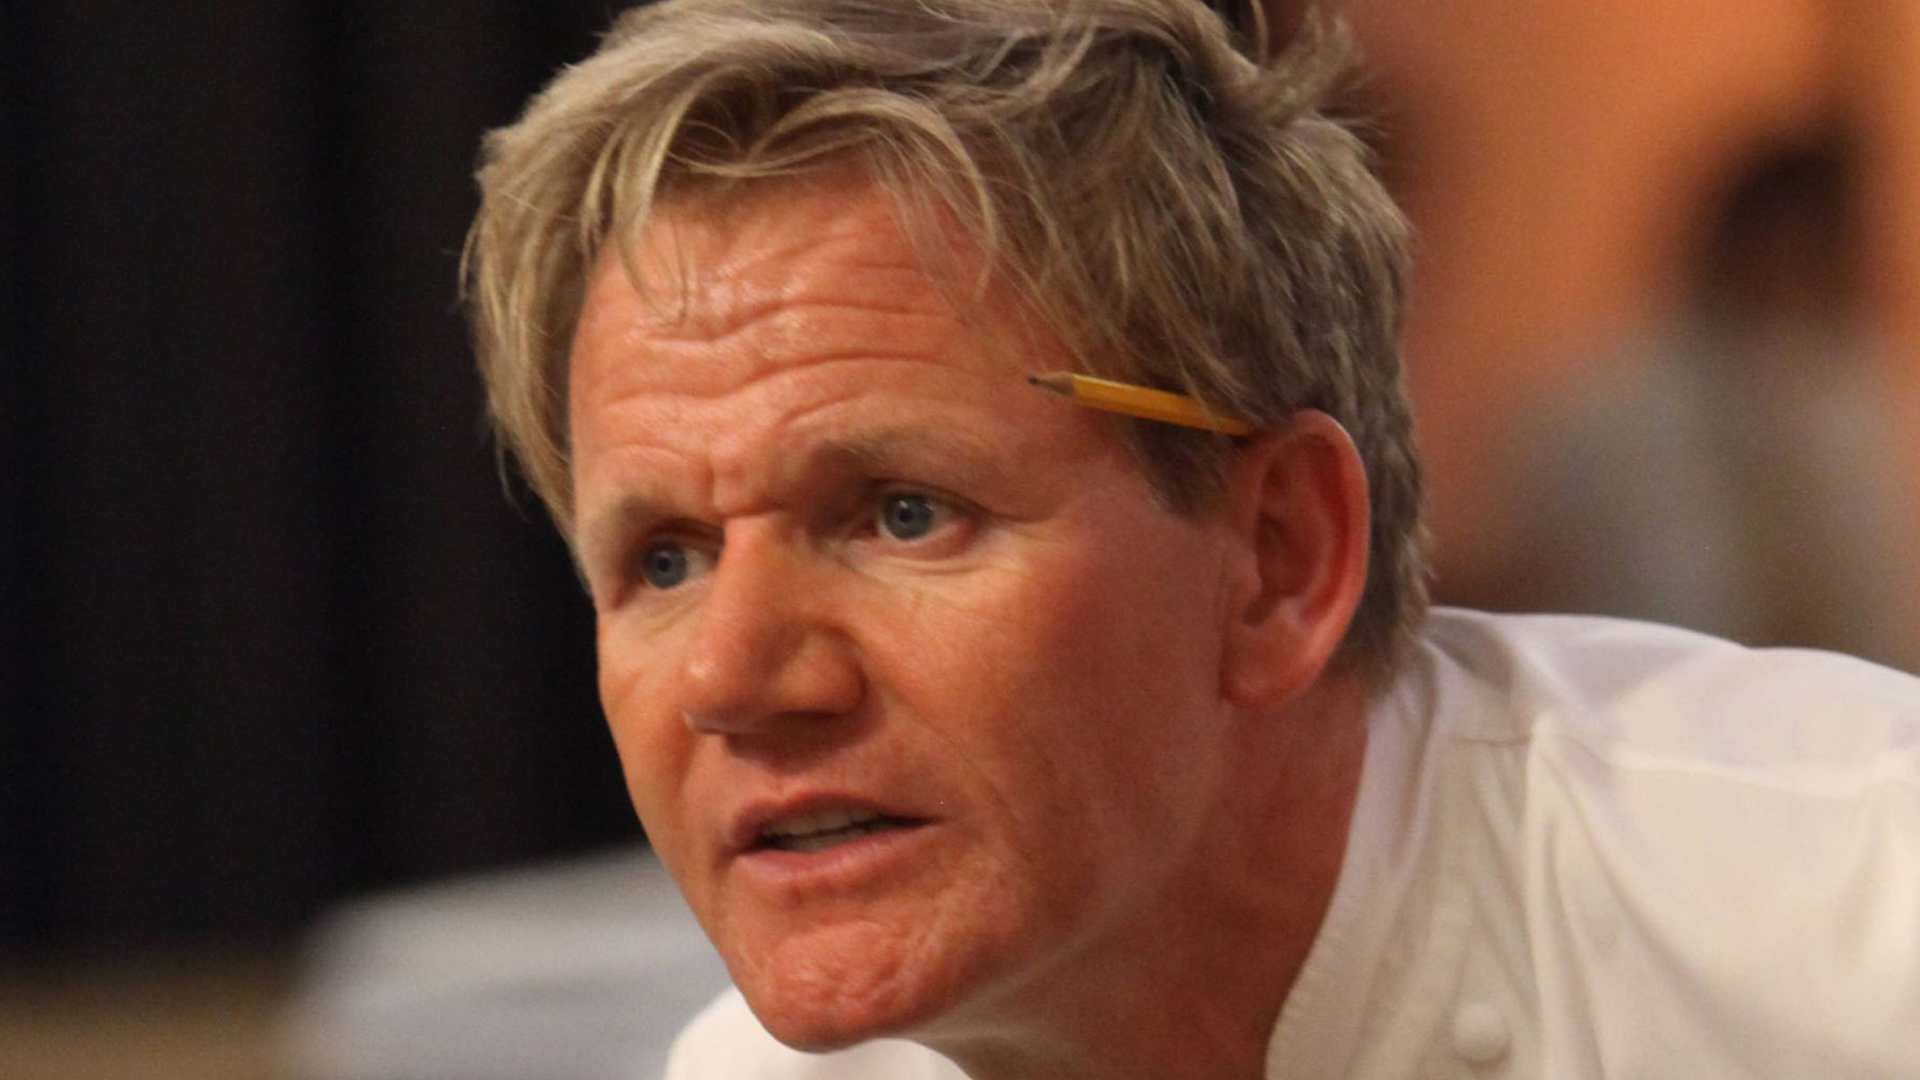 gordon ramsay - photo #43